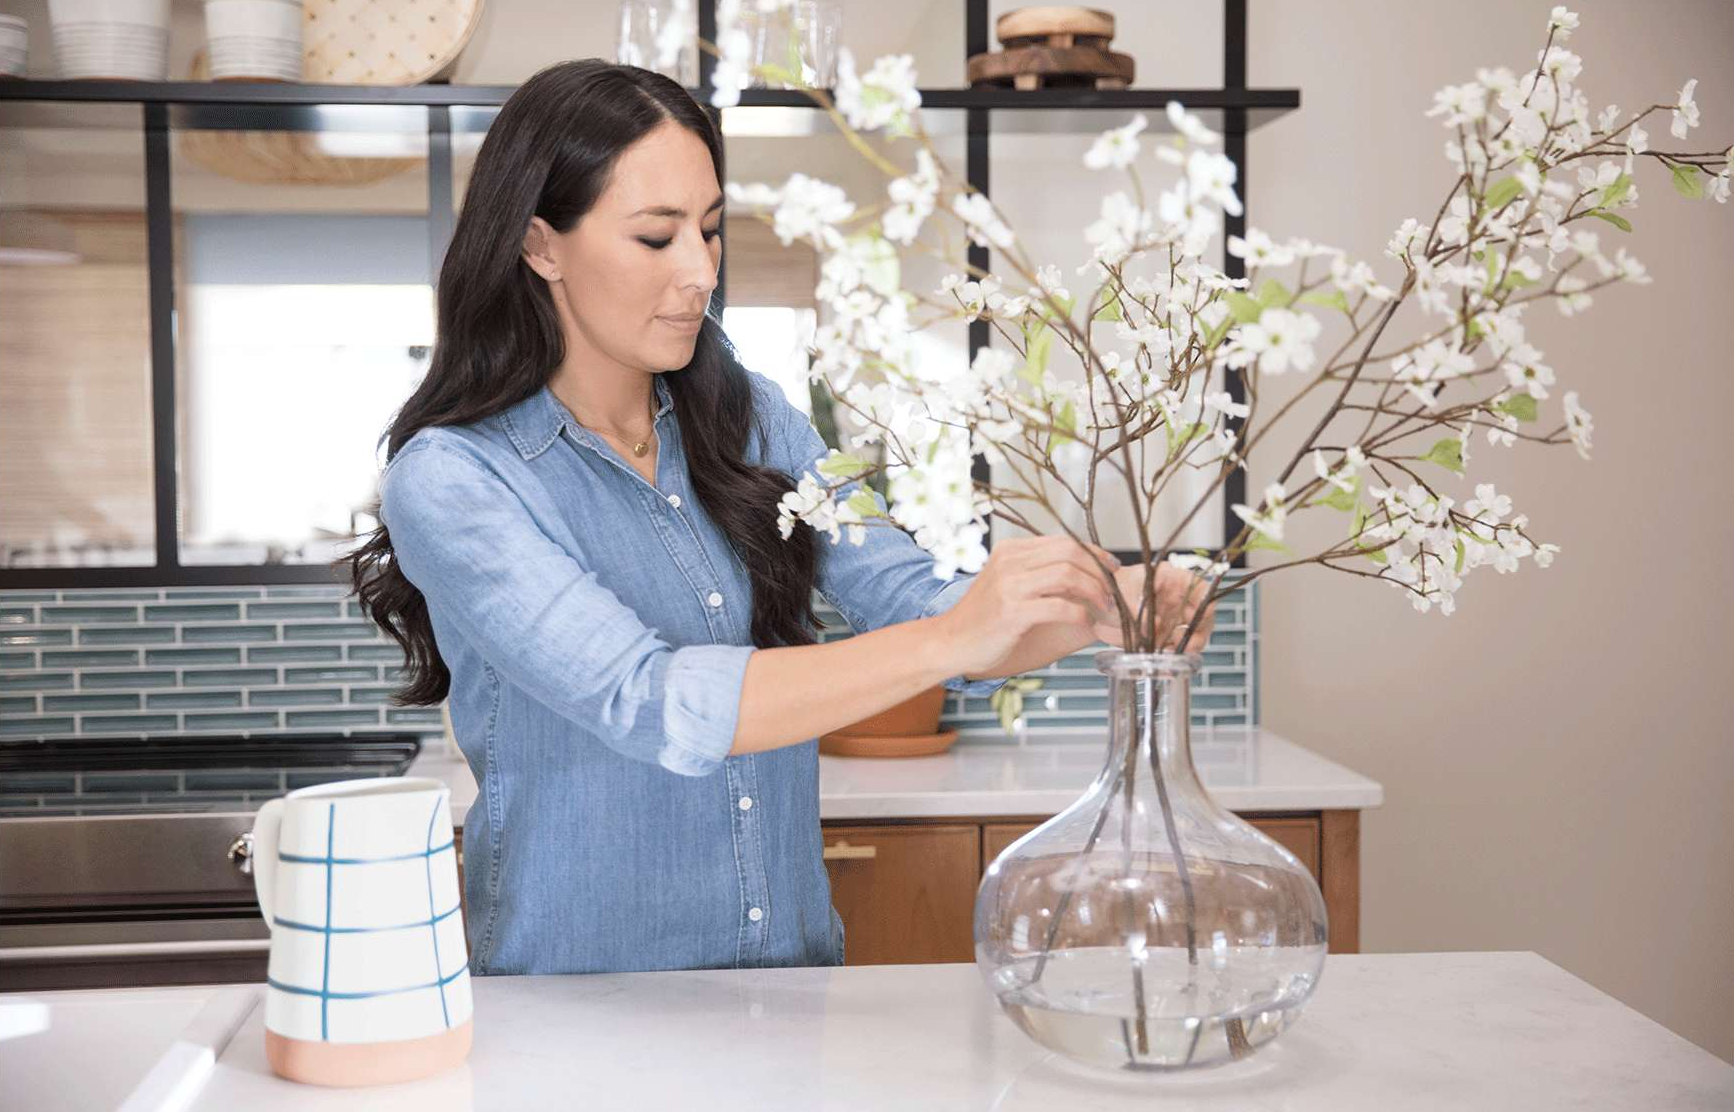 Shop Joanna Gaines' Favorite Picks from Her Spring 2018 Target Collection